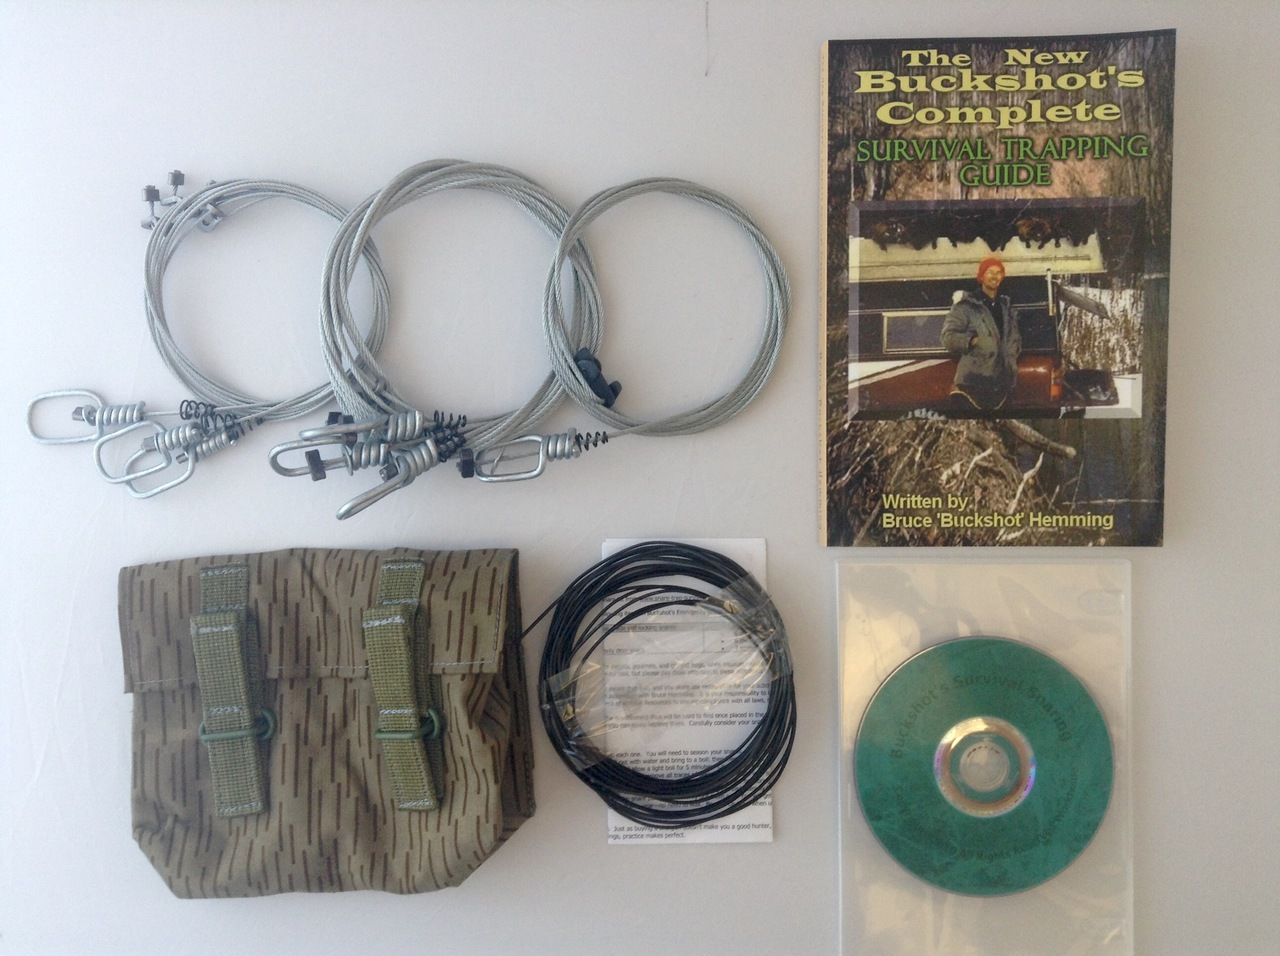 Buckshot's Small Snare Kit, Buckshot's Complete Survival Trapping Guide & Survival Snaring DVD